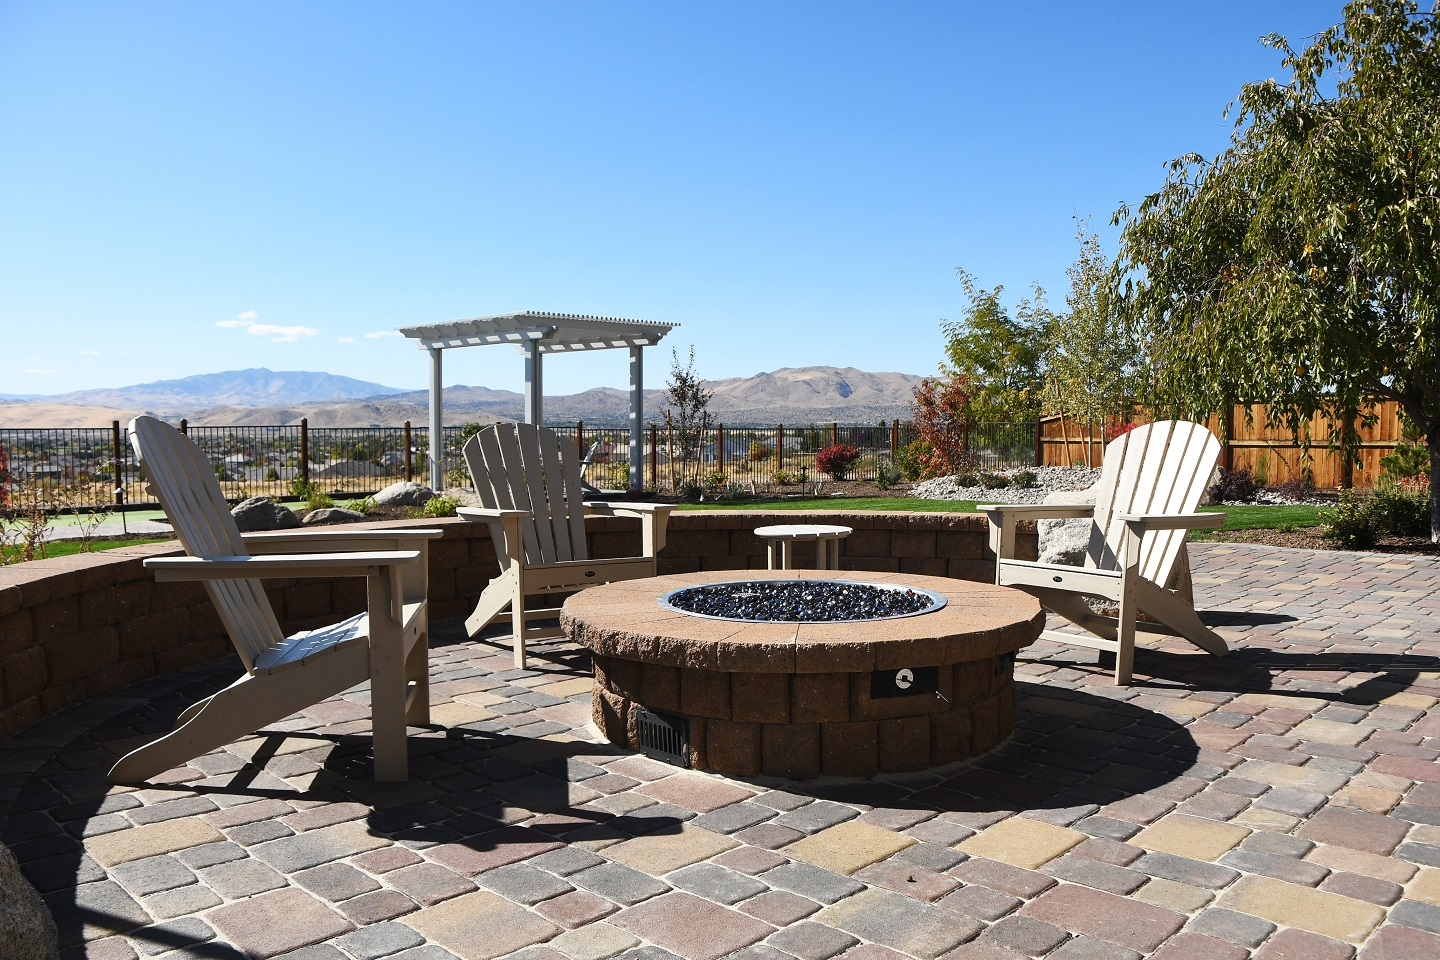 Outdoor fireplace and pergola in Reno, NV